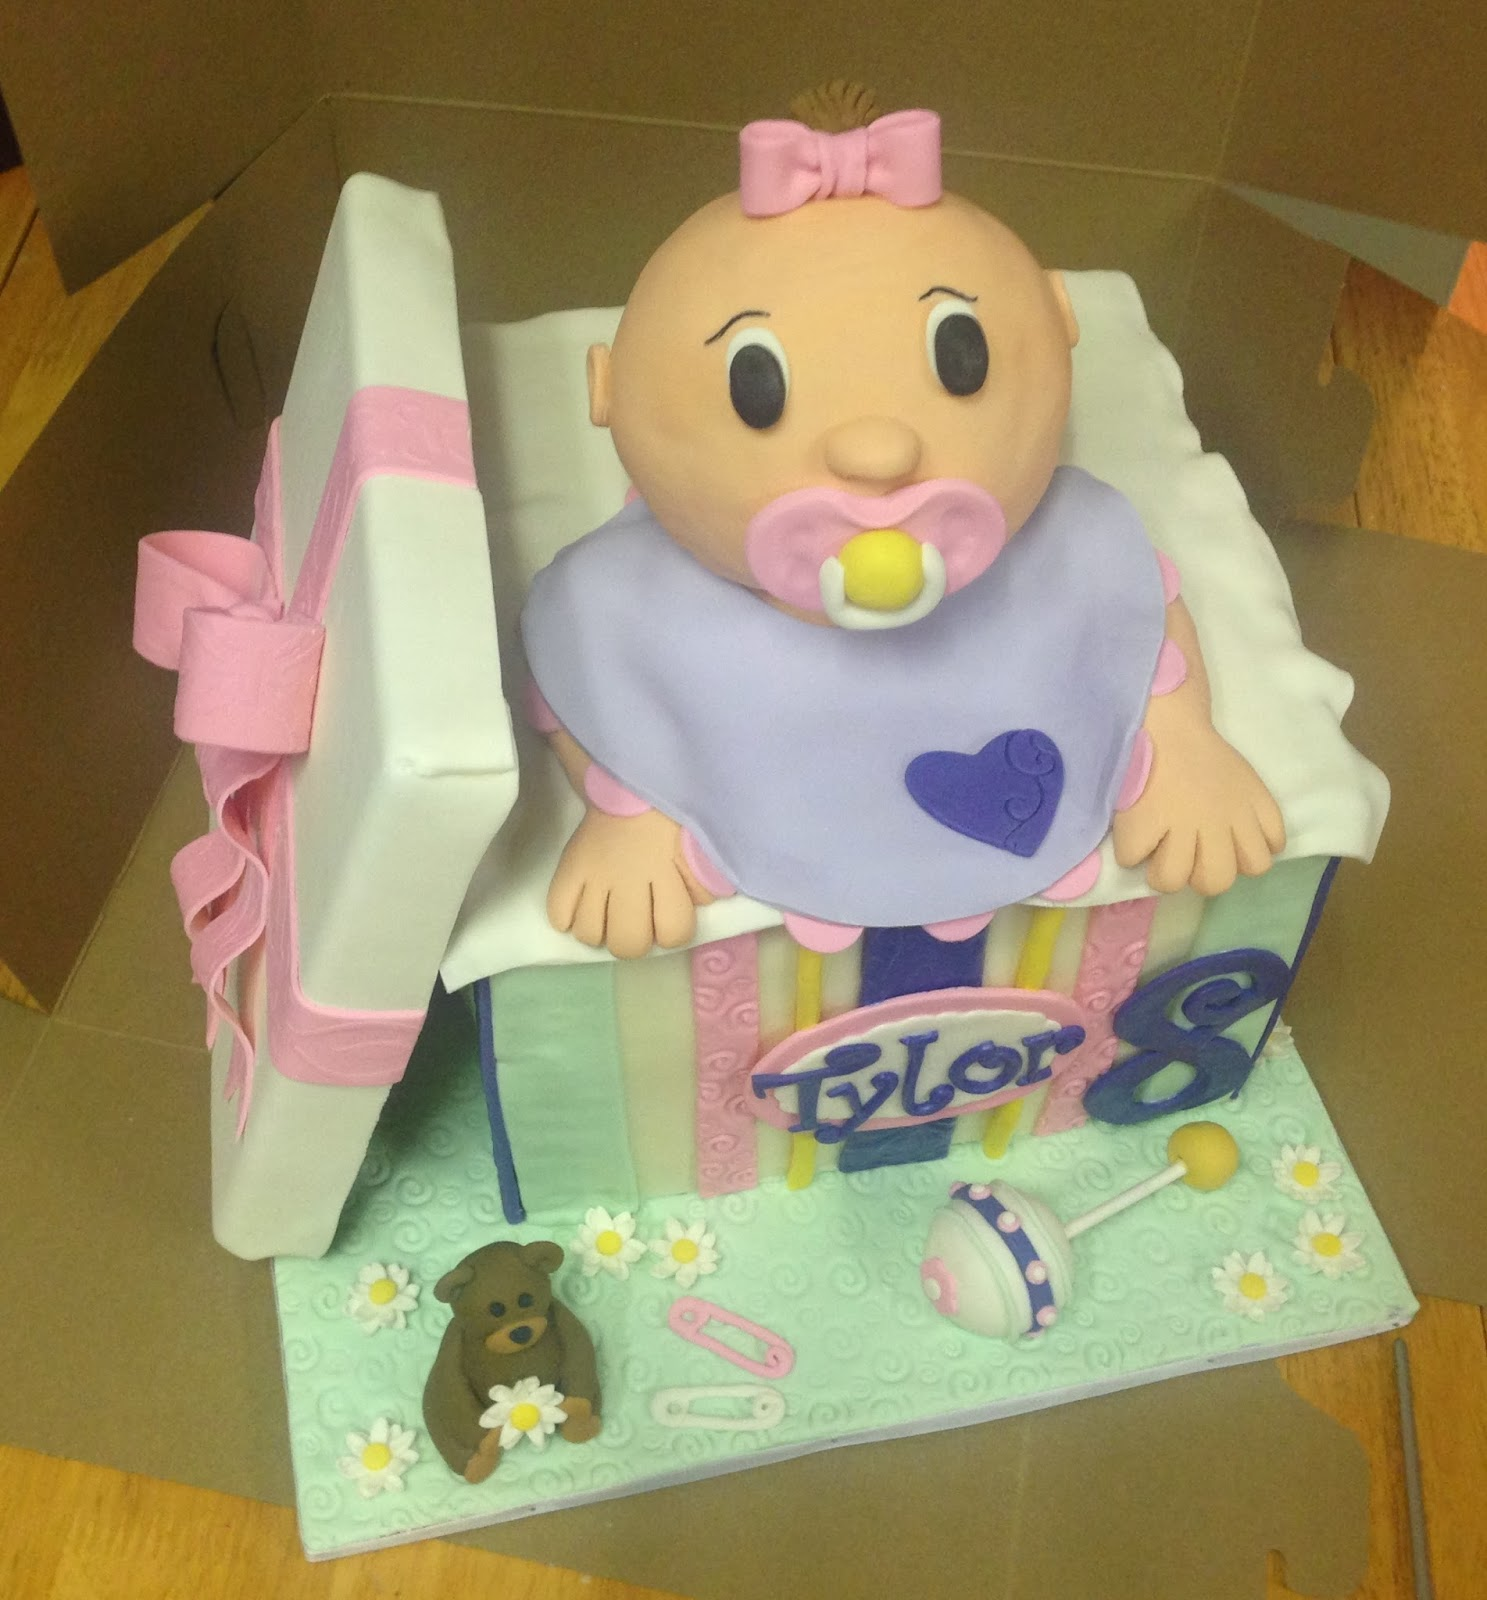 Baby Doll Cake Images : Cakes by Mindy: Baby Doll Cake 8